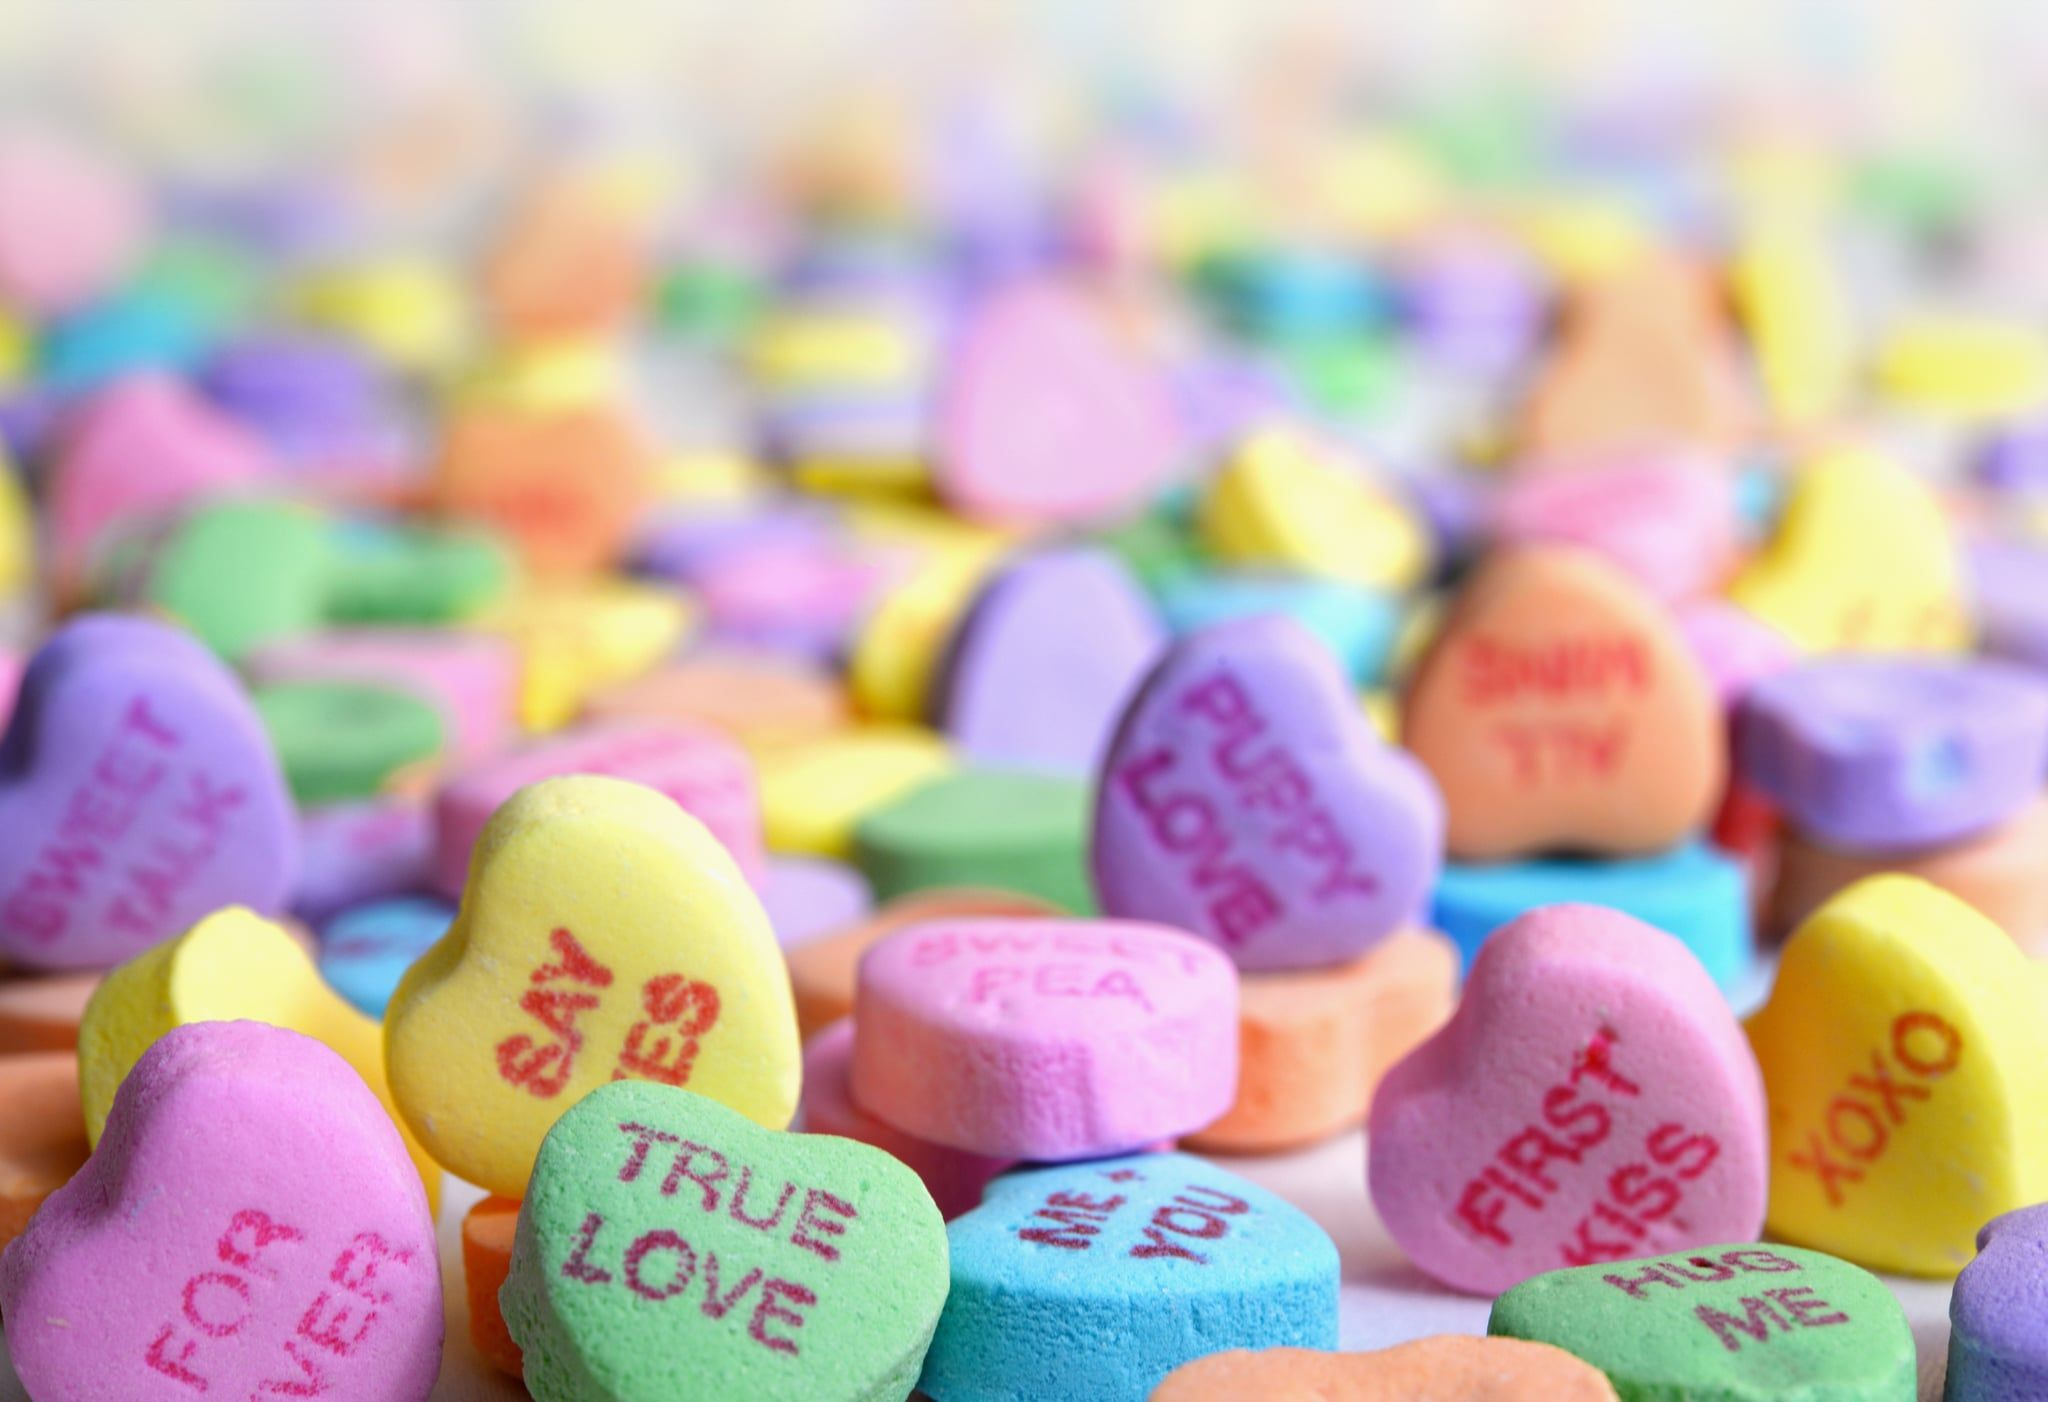 Sweethearts Candy Hearts Won T Be Sold This Valentine S Day After Iconic 153 Year History Heart Candy Valentines Gift Guide Valentine S Day Party Games